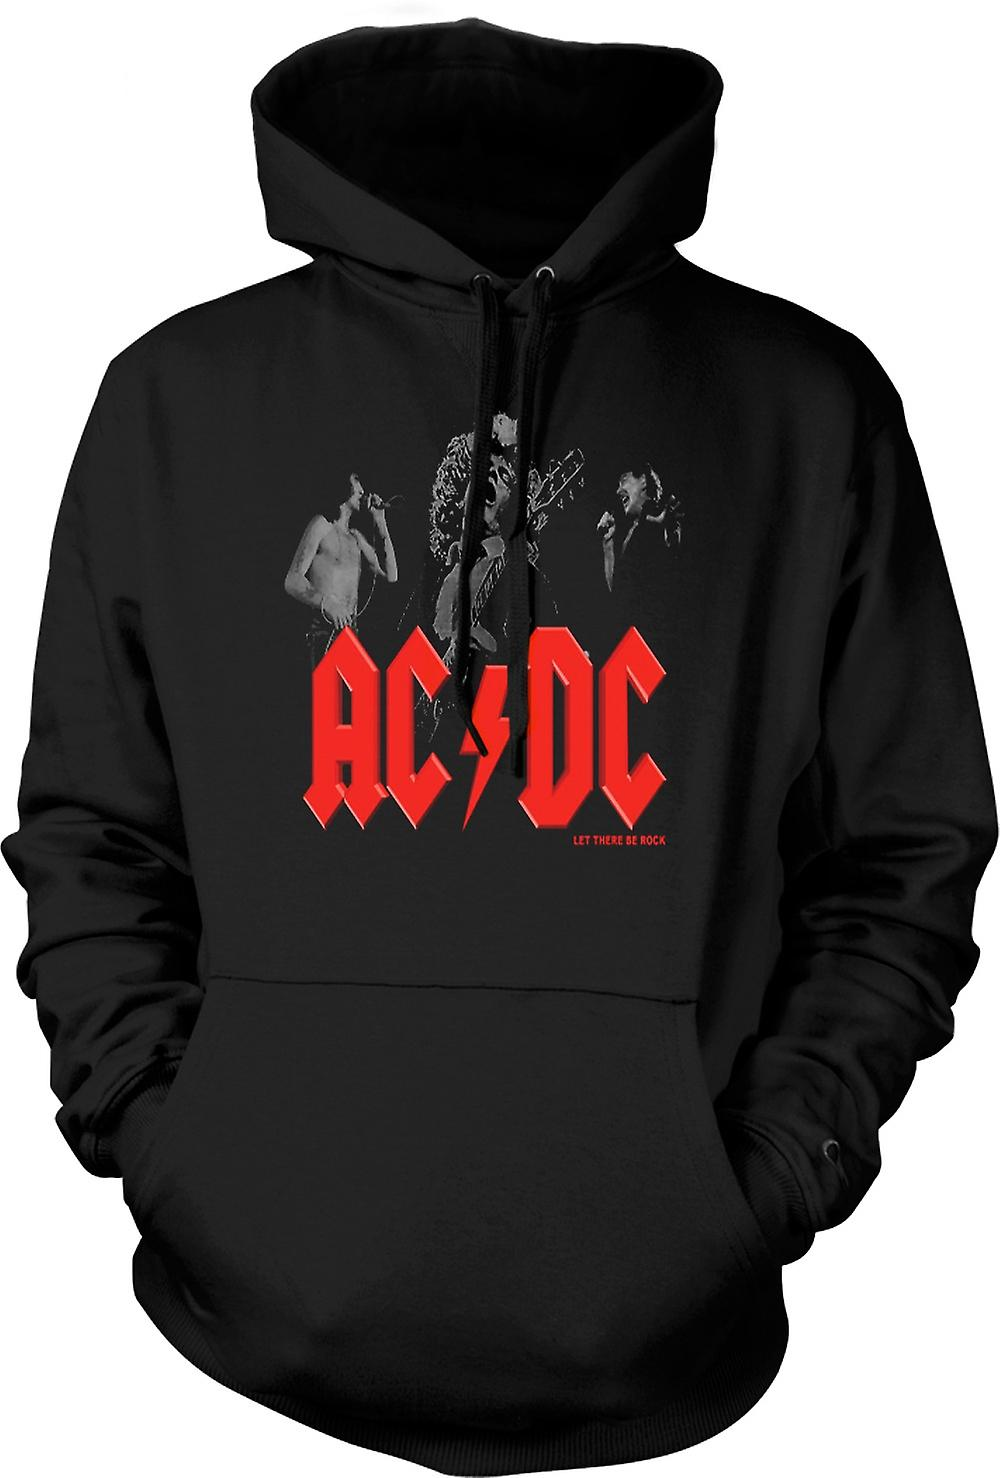 Mens Hoodie - AC/DC - Let There Be Rock - Band